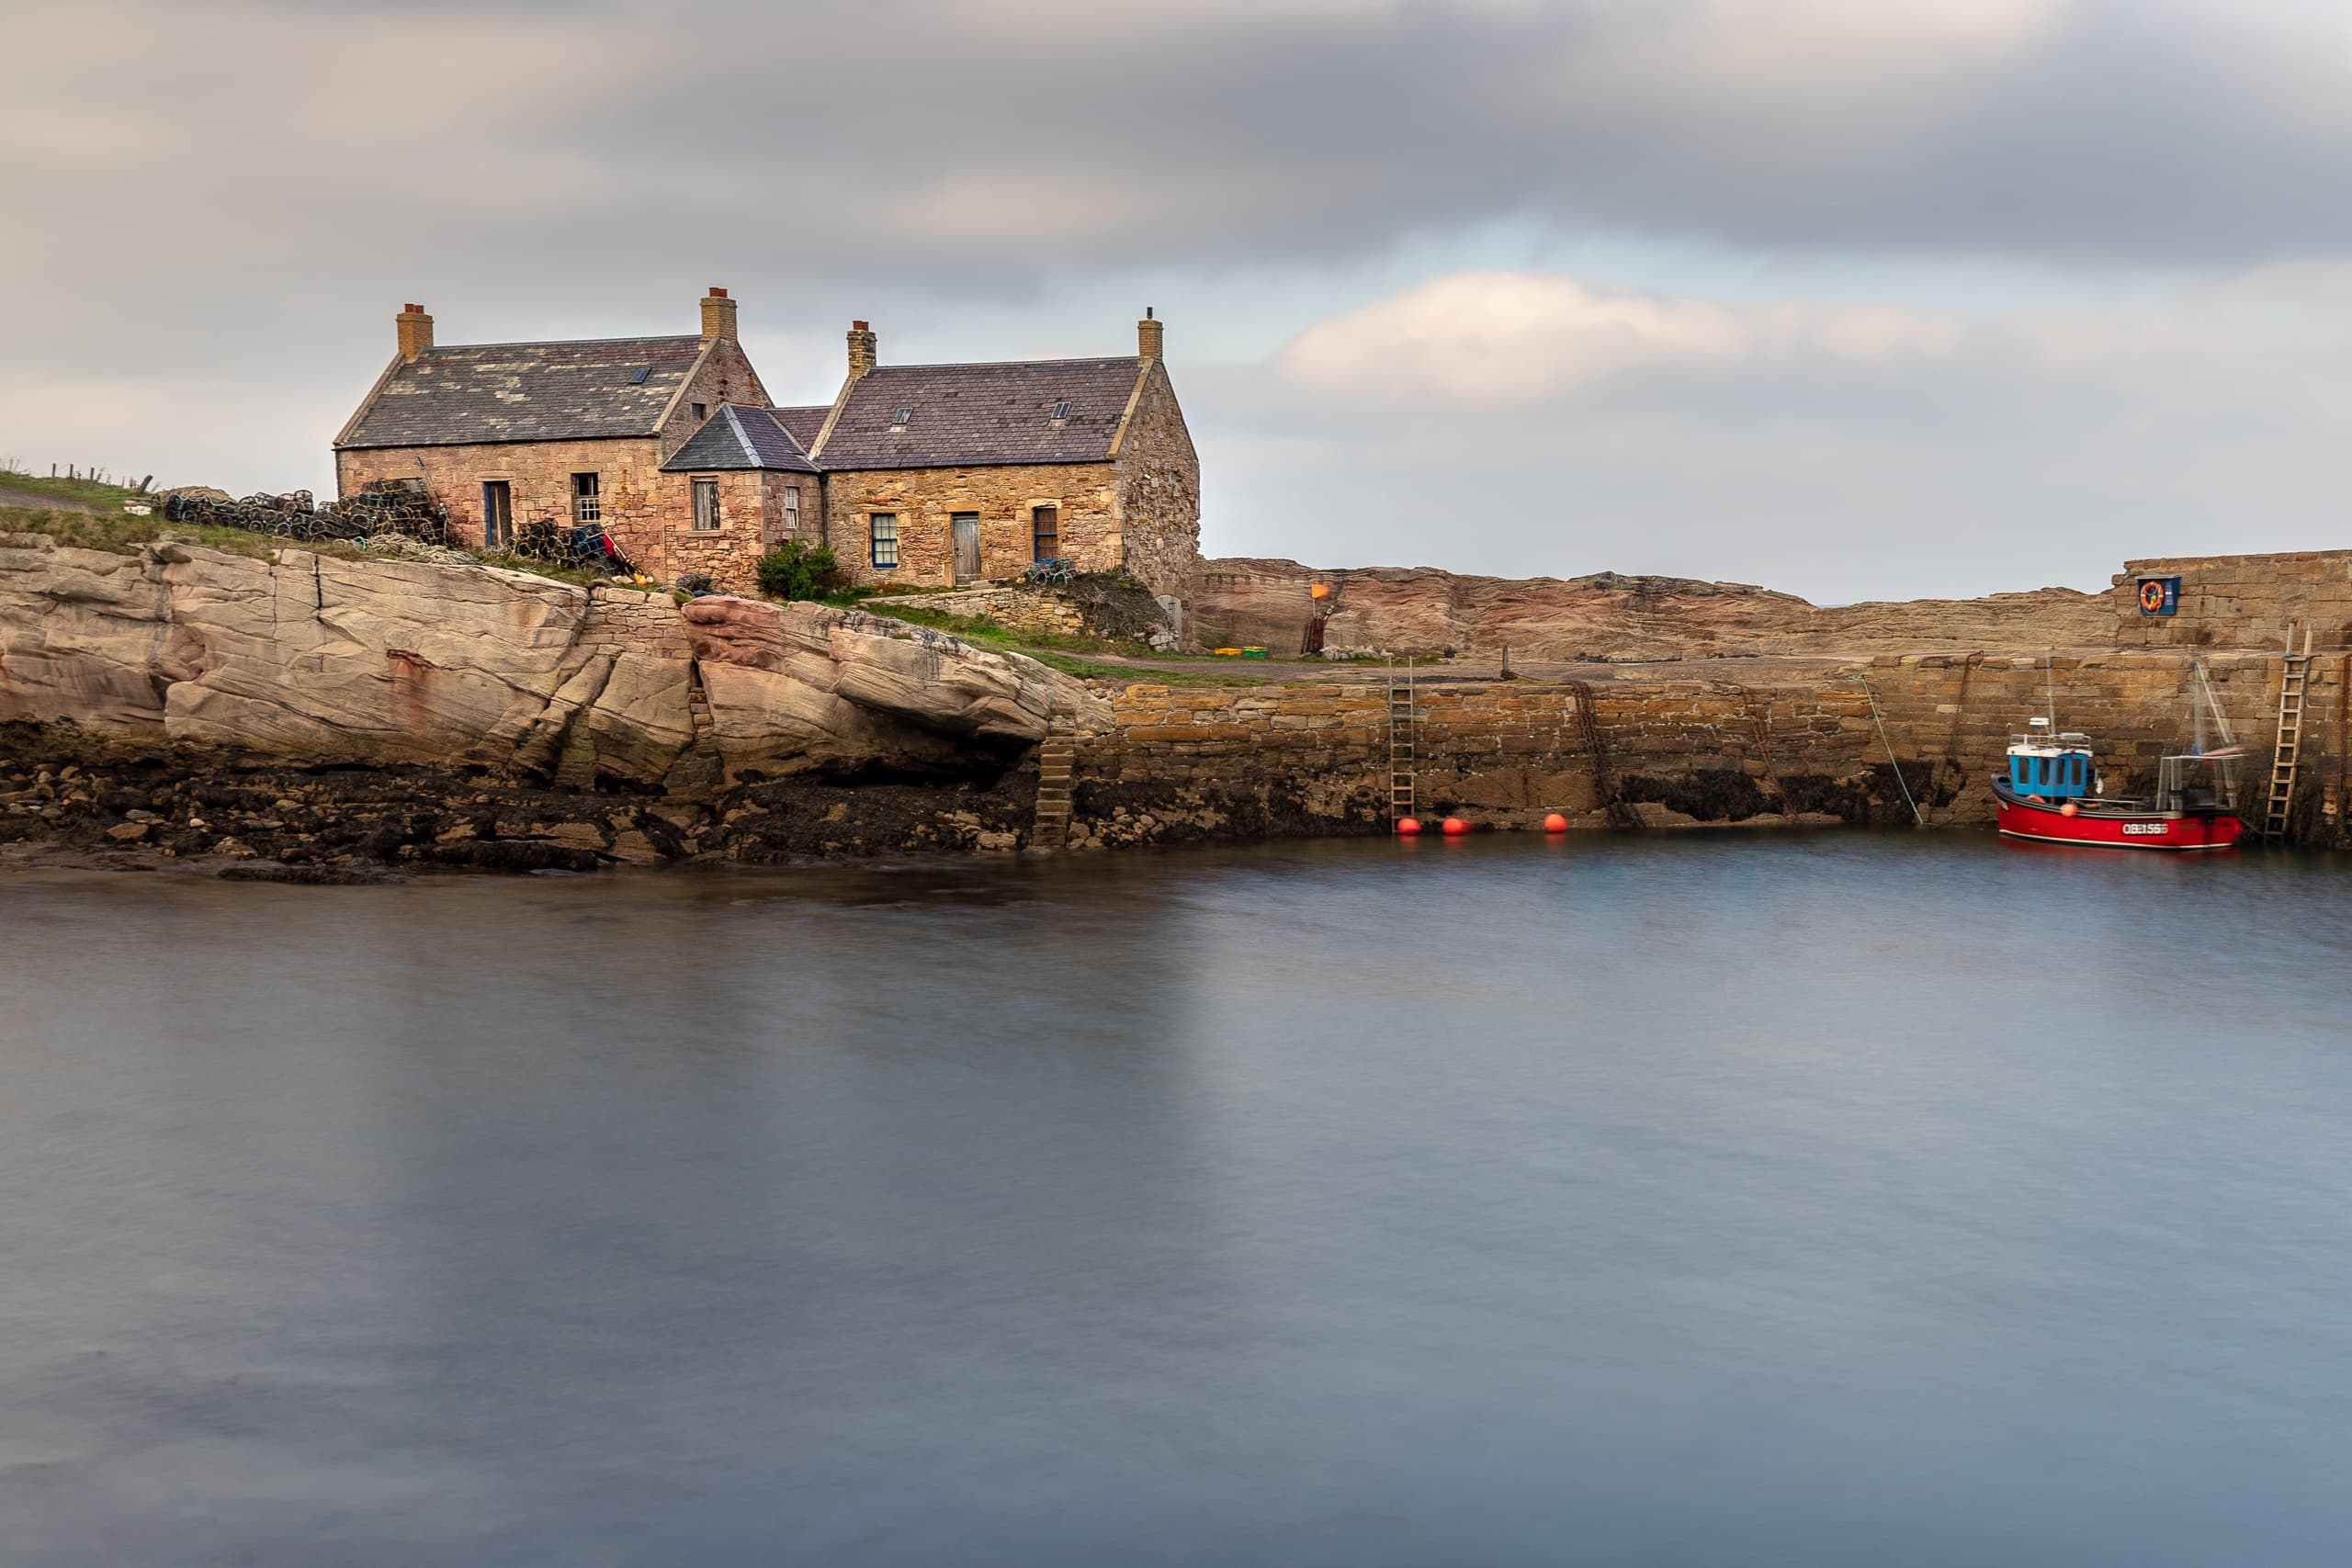 Cove Harbour houses | f/8 10sec ISO-100 31mm  | ILCE-7M2